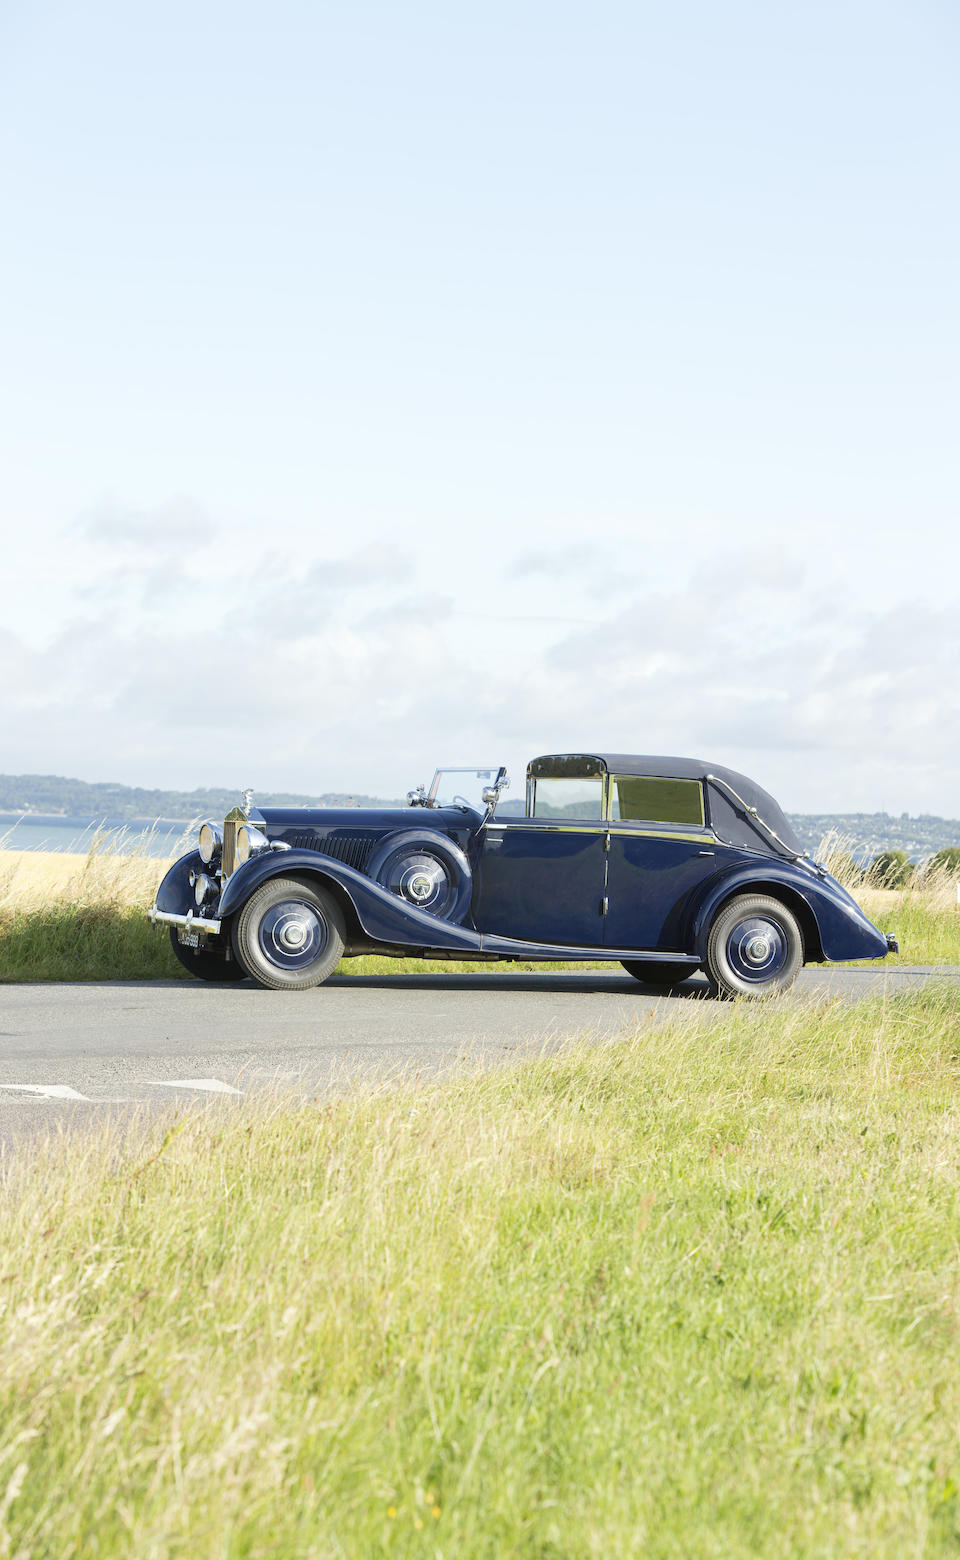 The ex-Hedy Lamarr and Fritz Mandl,1937 ROLLS-ROYCE  PHANTOM III DROPHEAD COUPE  Chassis no. 3BT185 Engine no. K68R